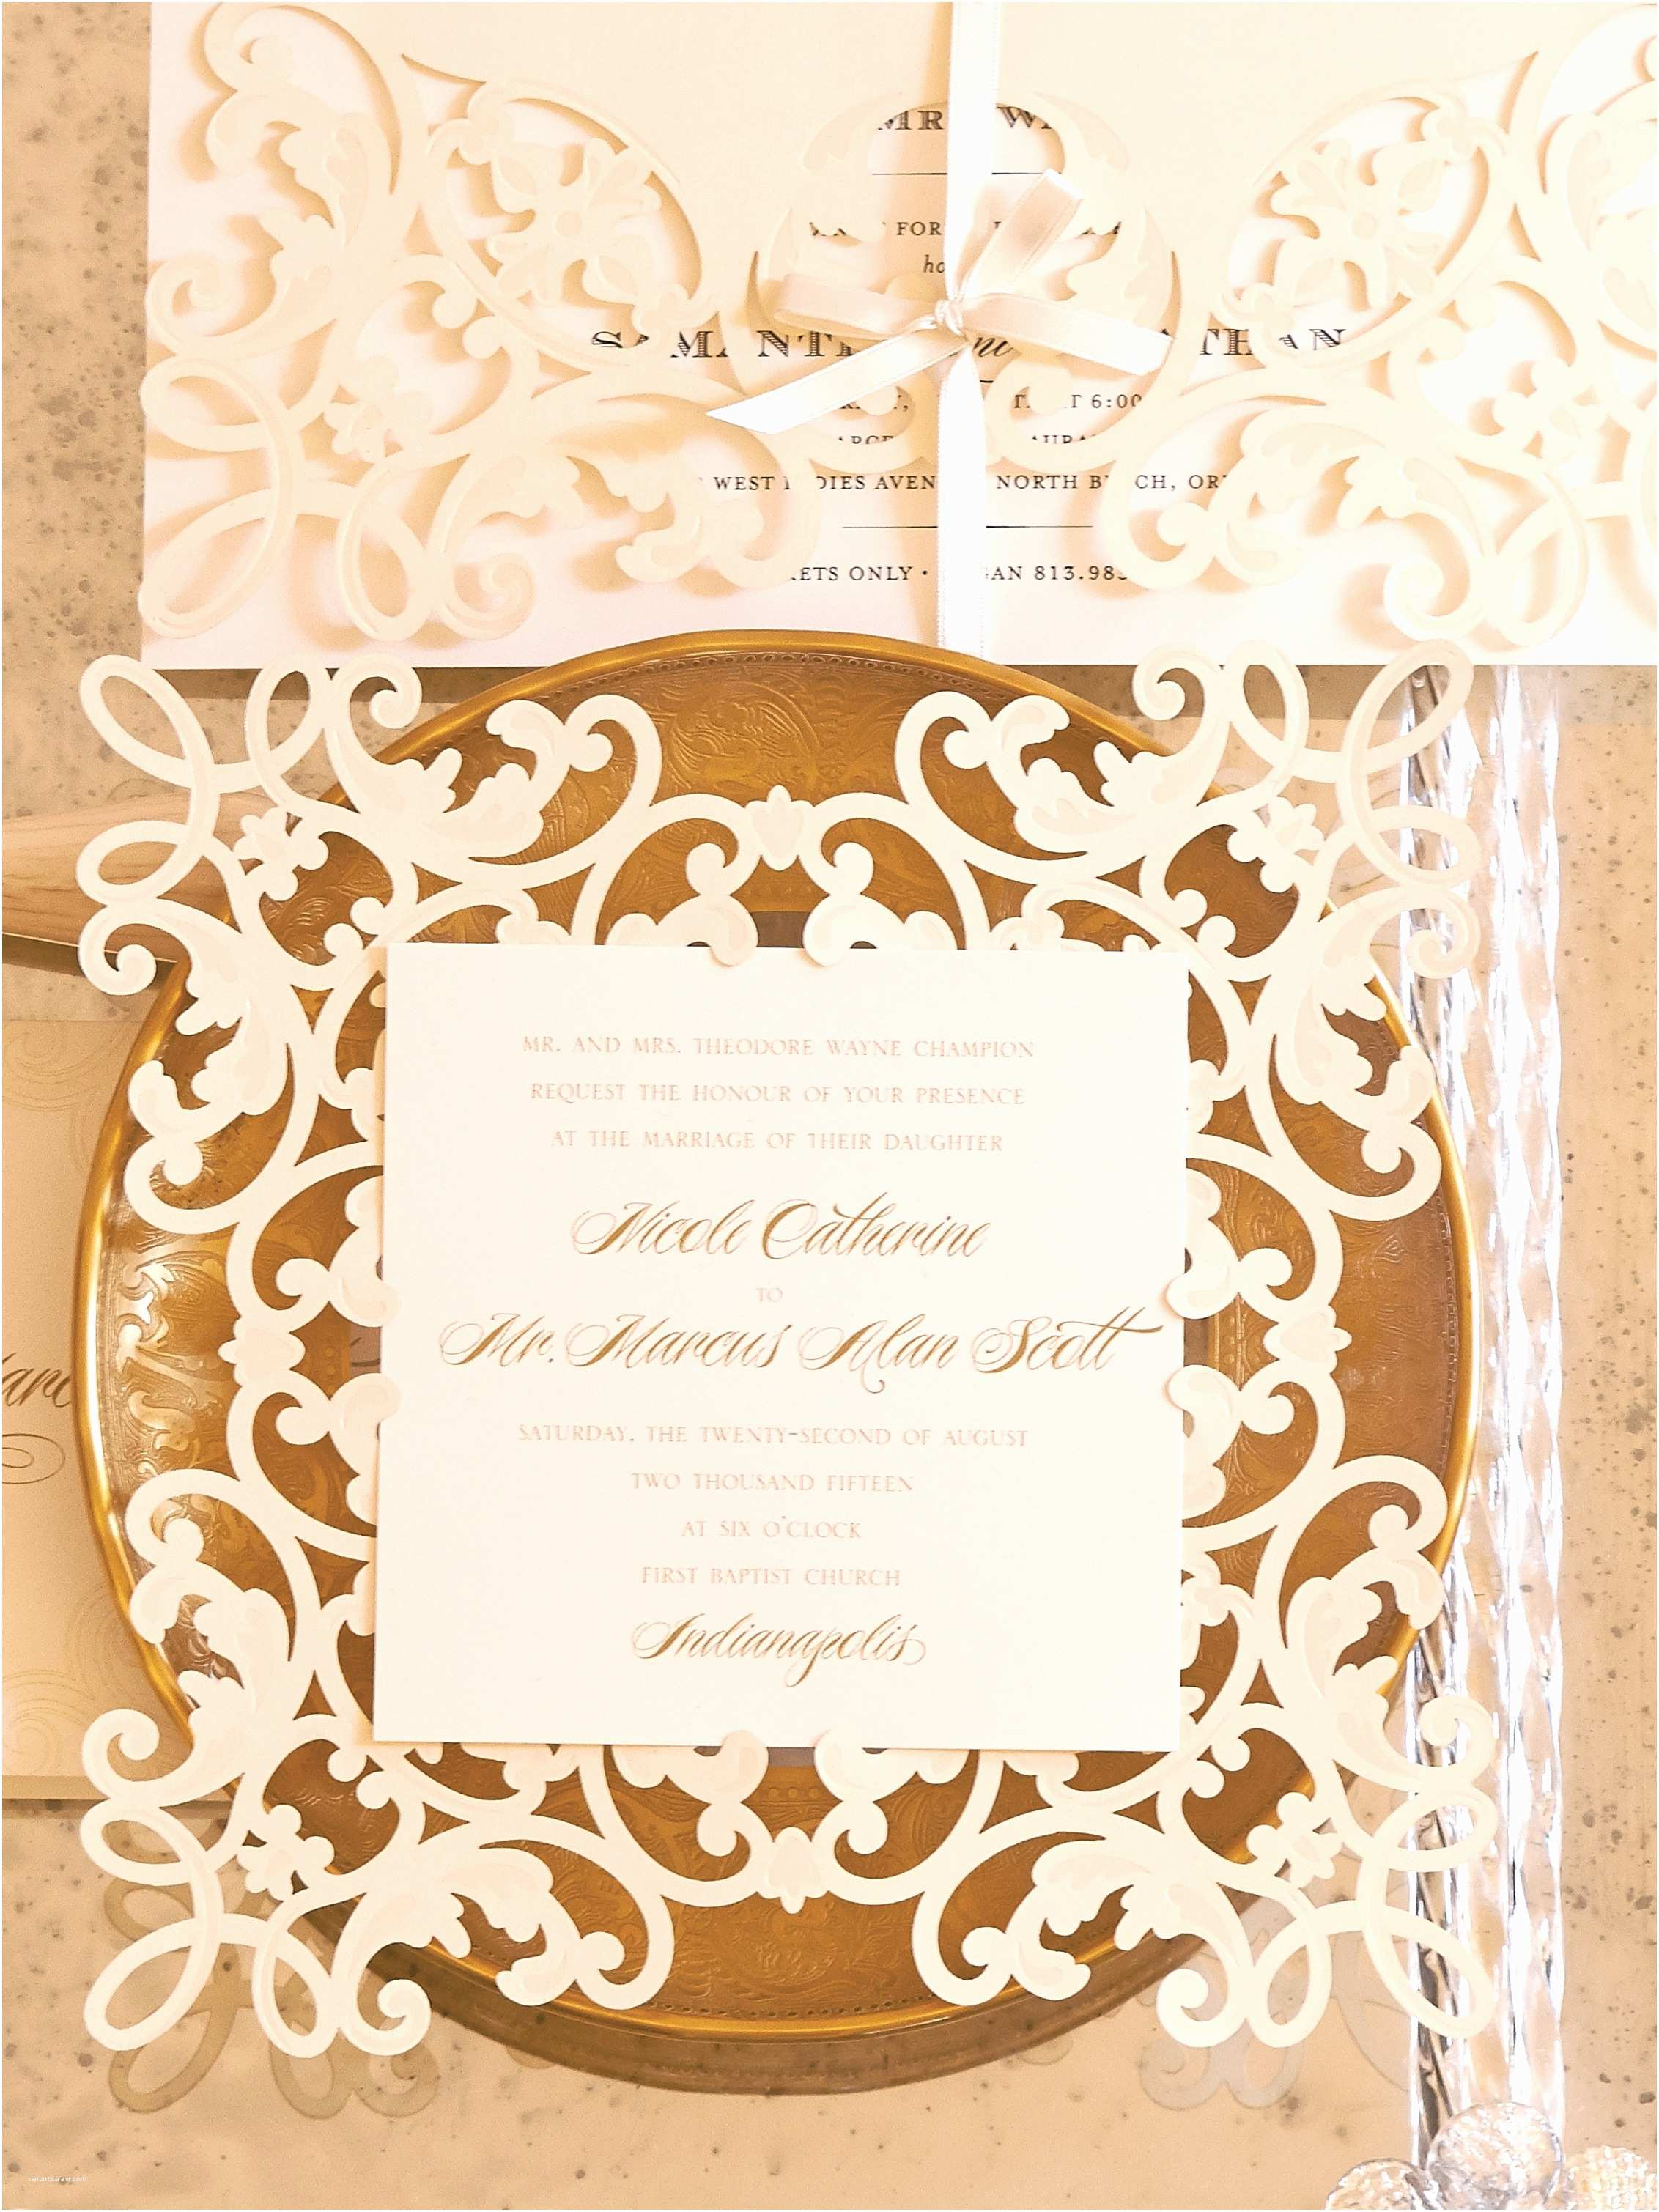 cricut wedding invitations awesome make your own wedding invitations with help from cricut explore